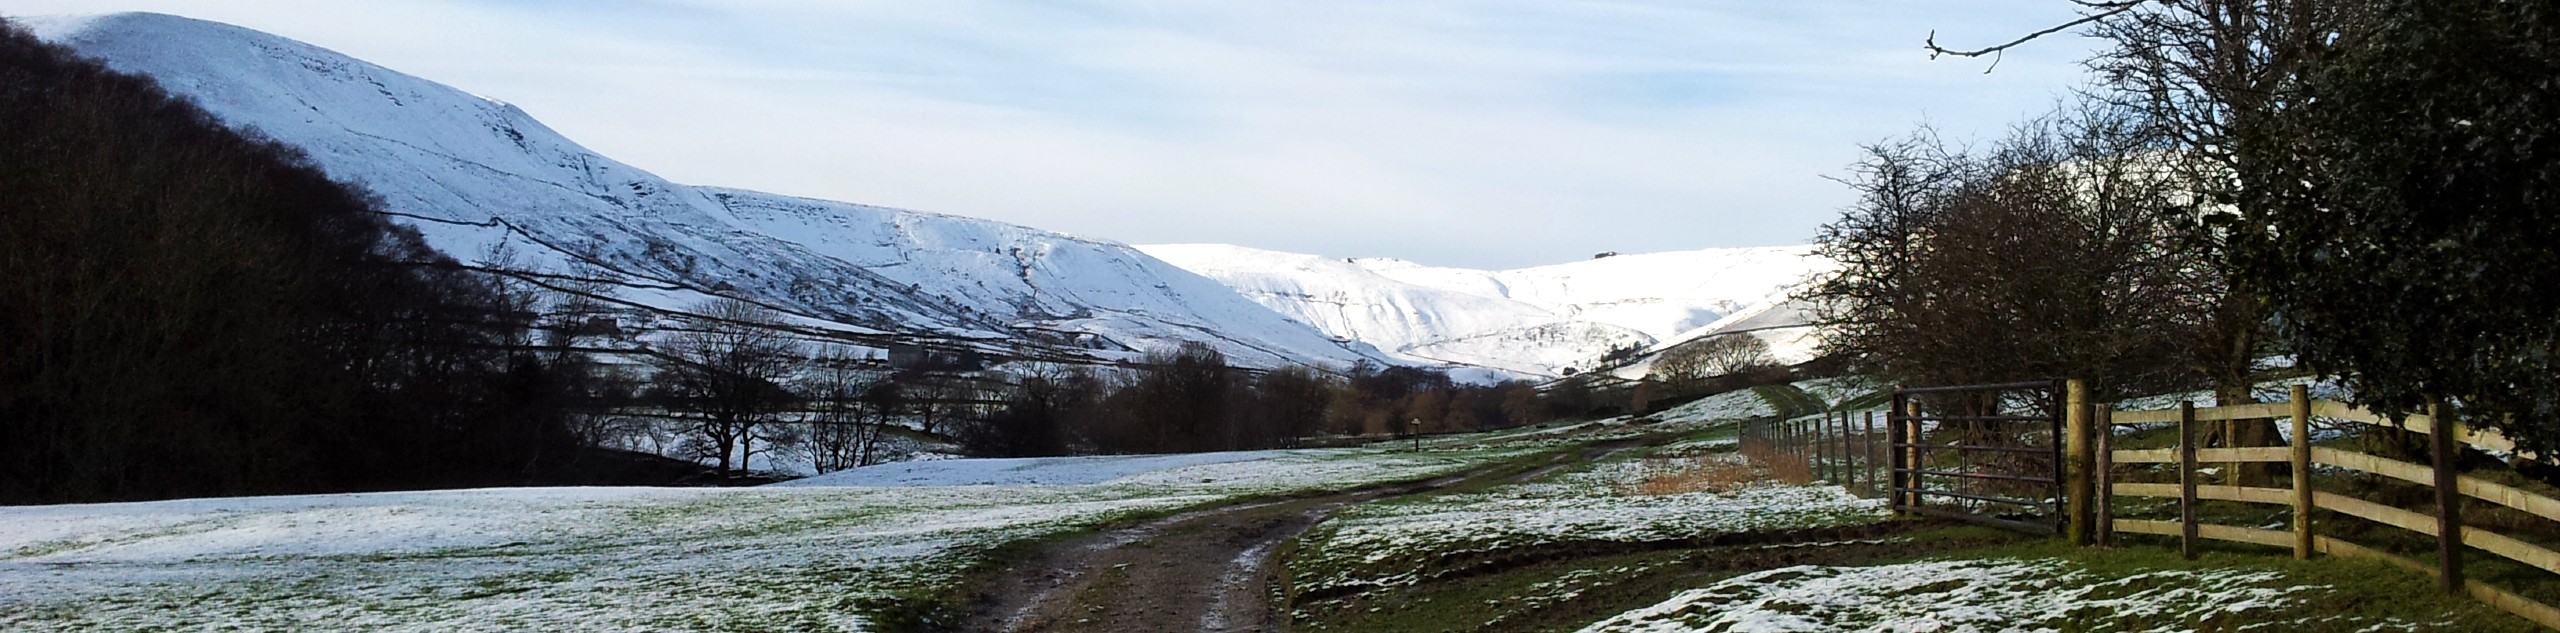 Barber Booth and Edale Head